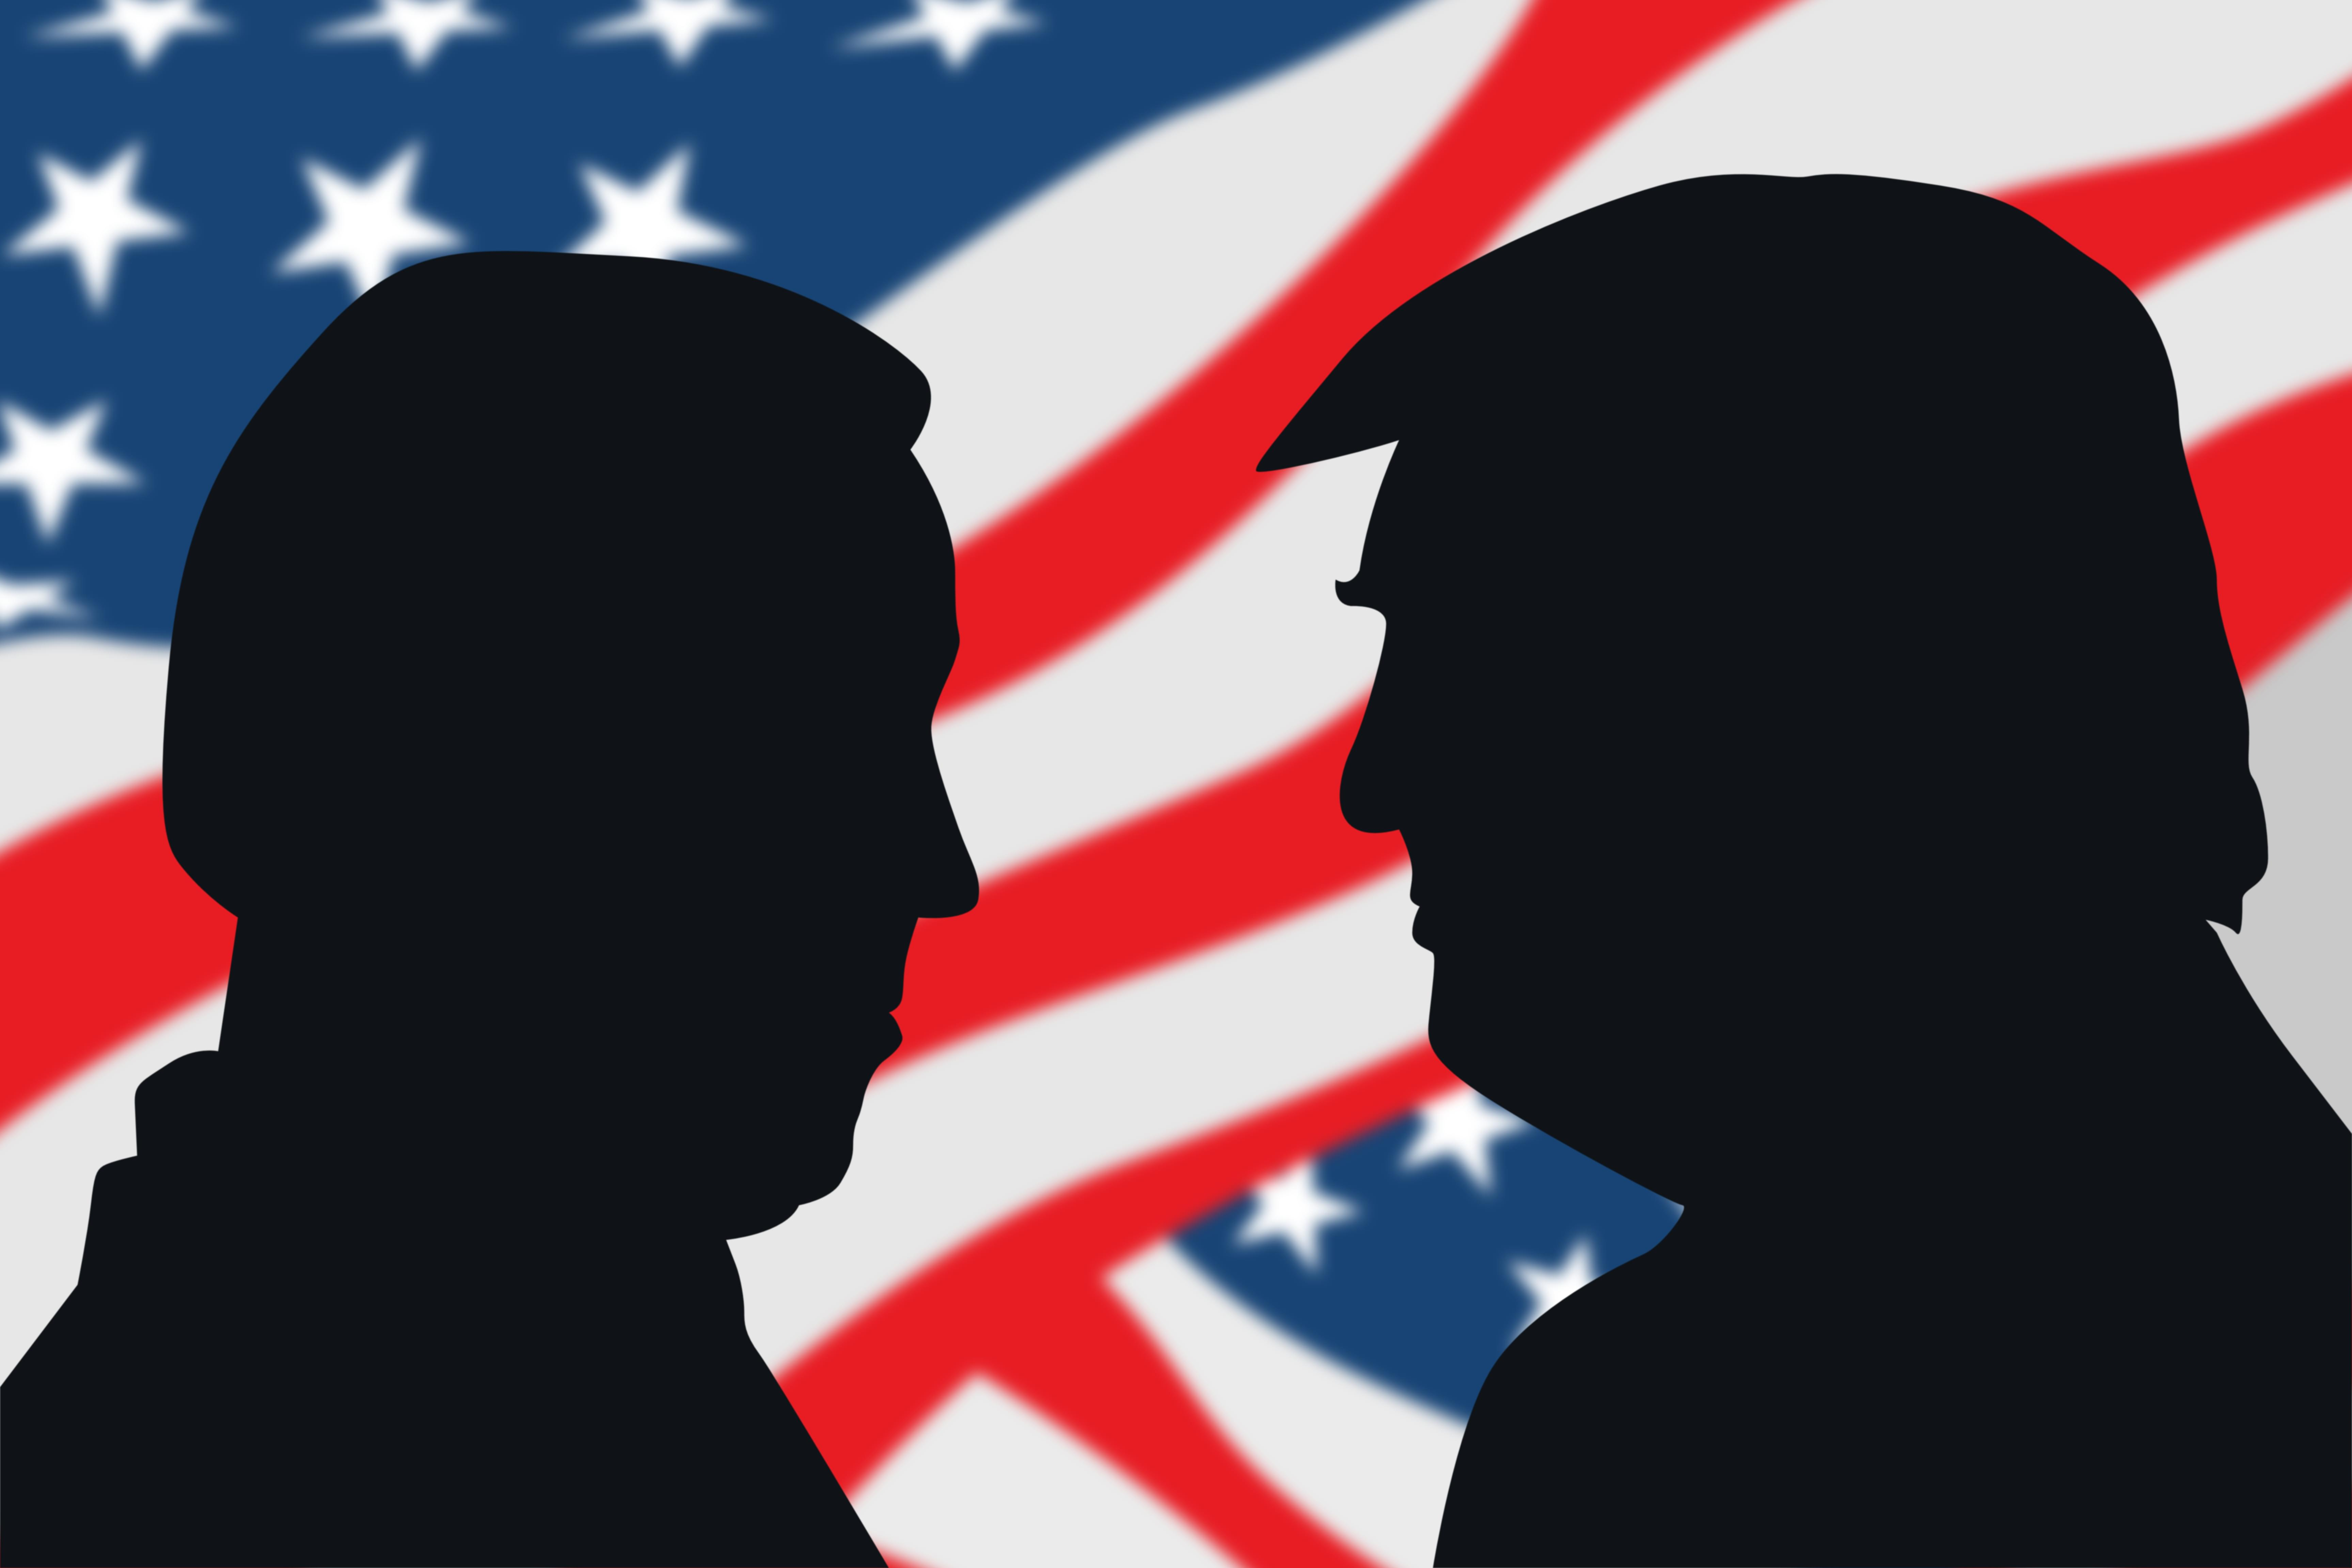 Mute It: 2nd Presidential Debate Tonight will have a new rule